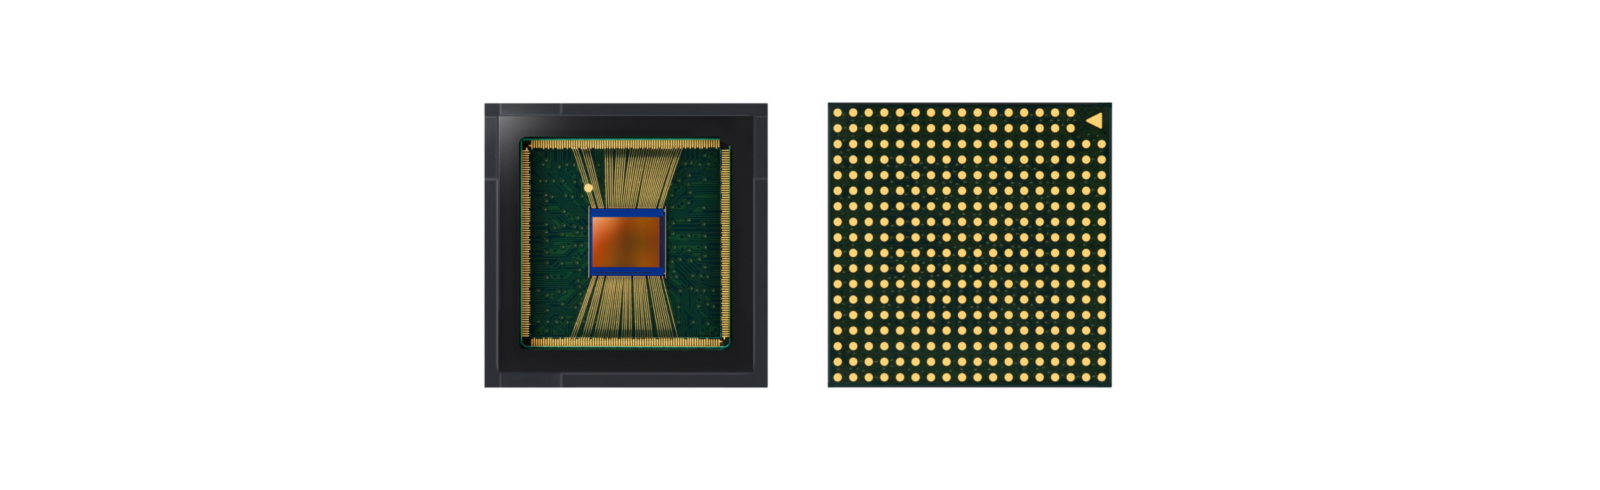 Samsung ISOCELL Slim 3T2 is an ultra-slim 20MP image sensor for full-screen smartphones